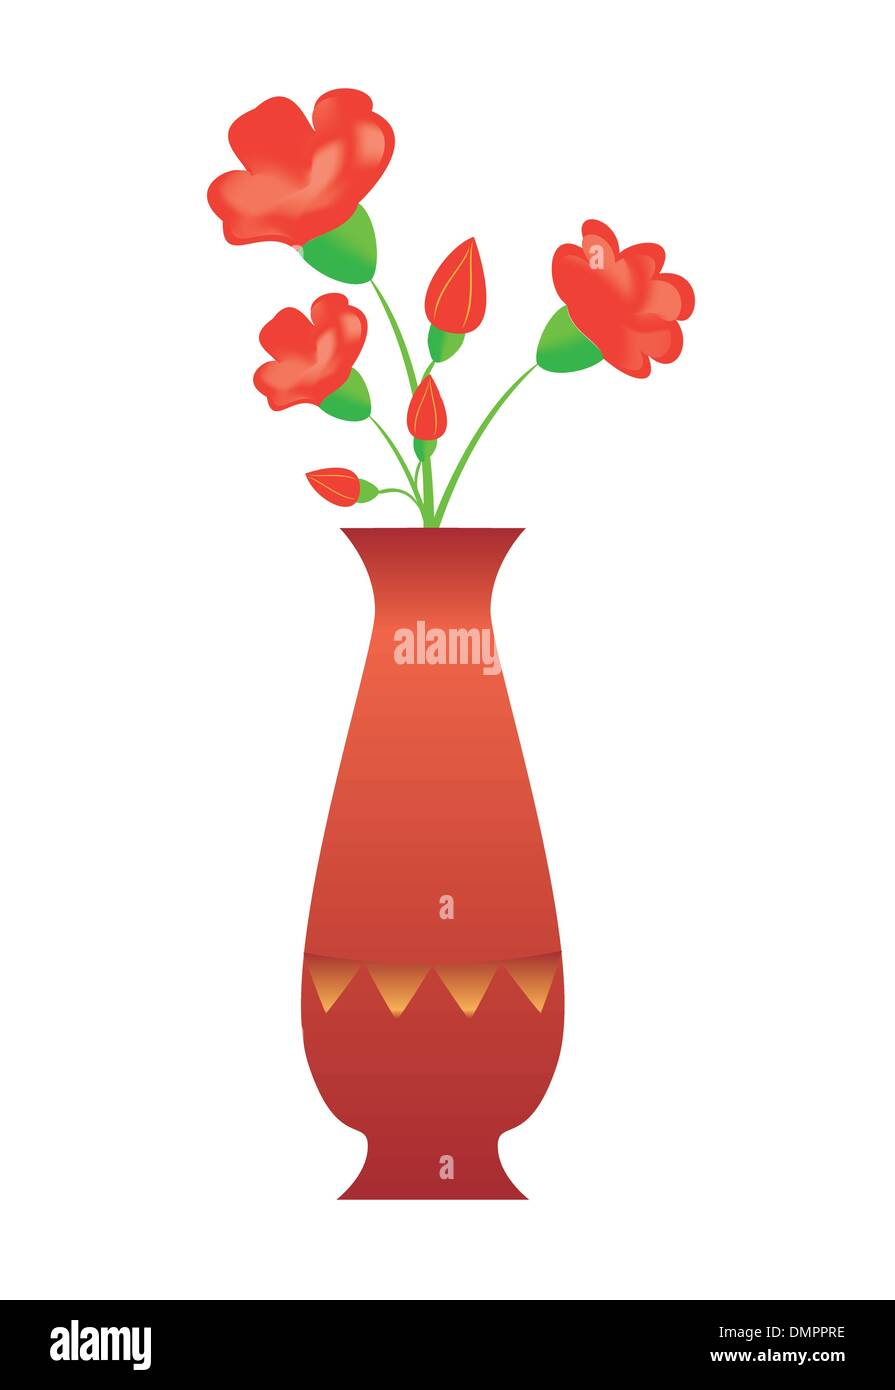 Vase Vector Vectors Stock Photos & Vase Vector Vectors Stock Images ...